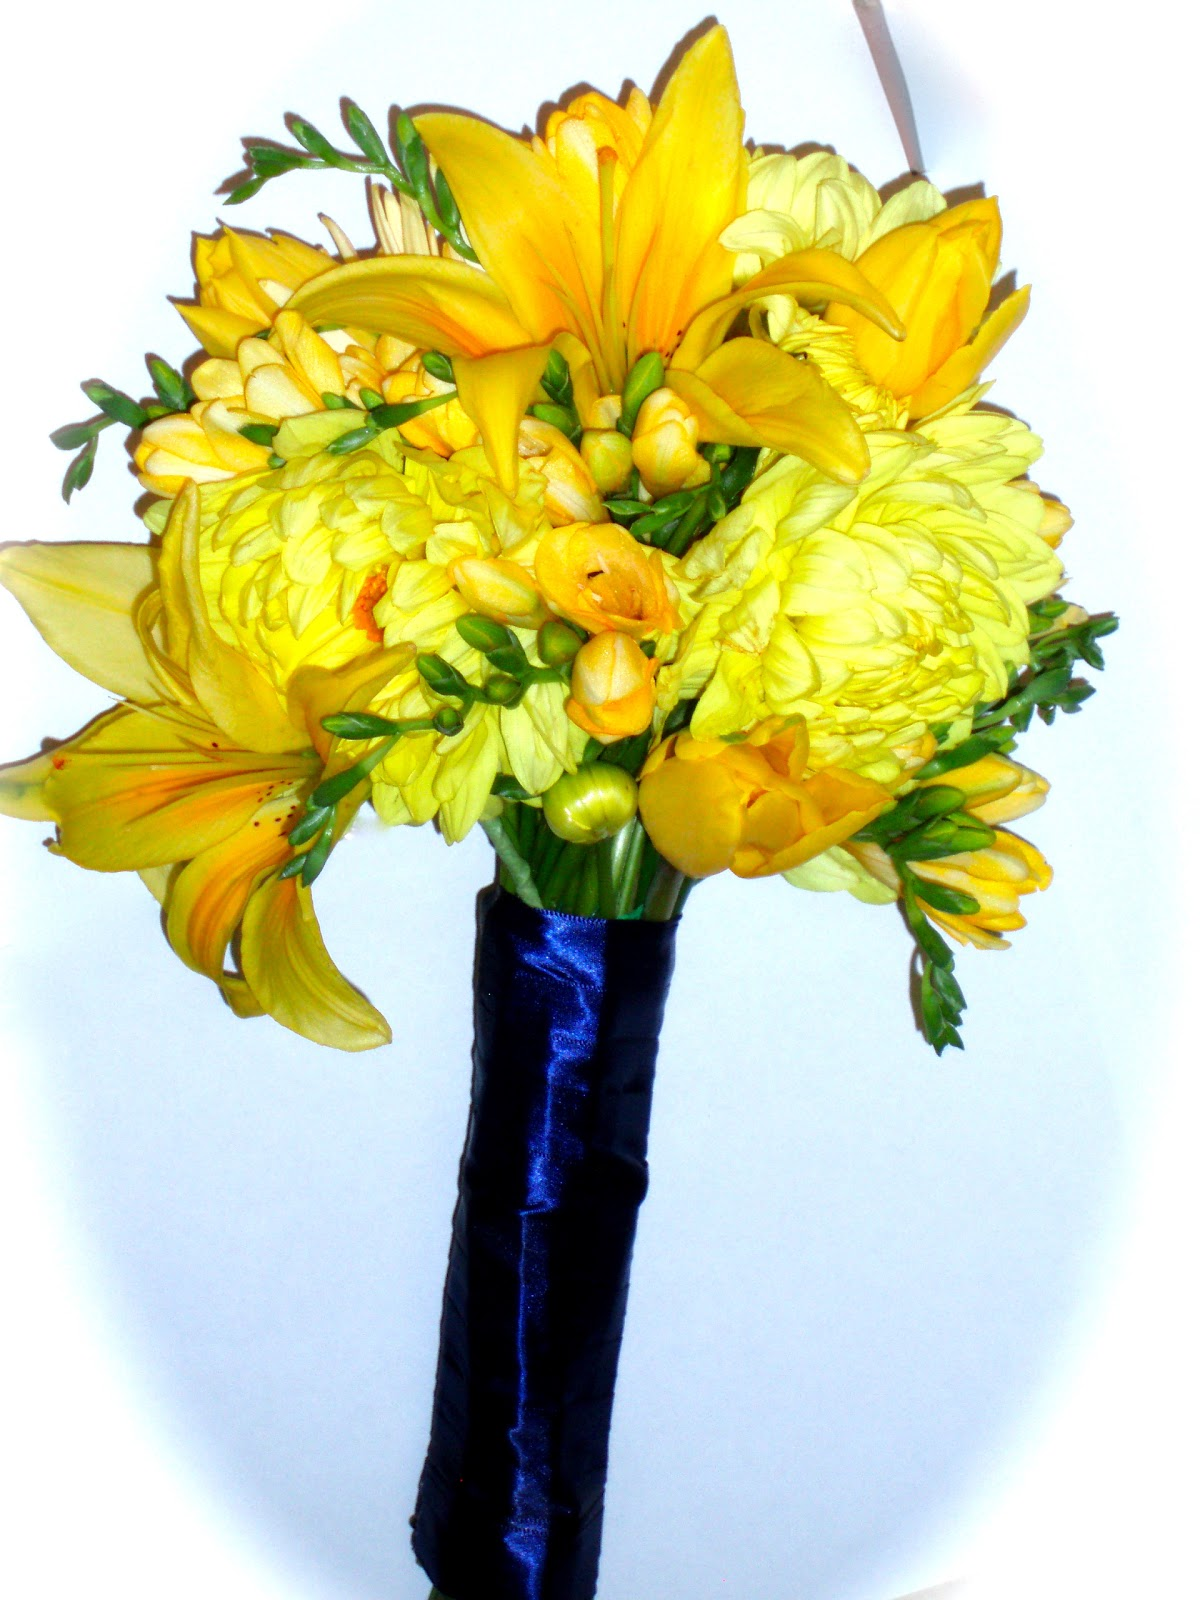 The Flower Girl Blog: yellow and navy blue wedding